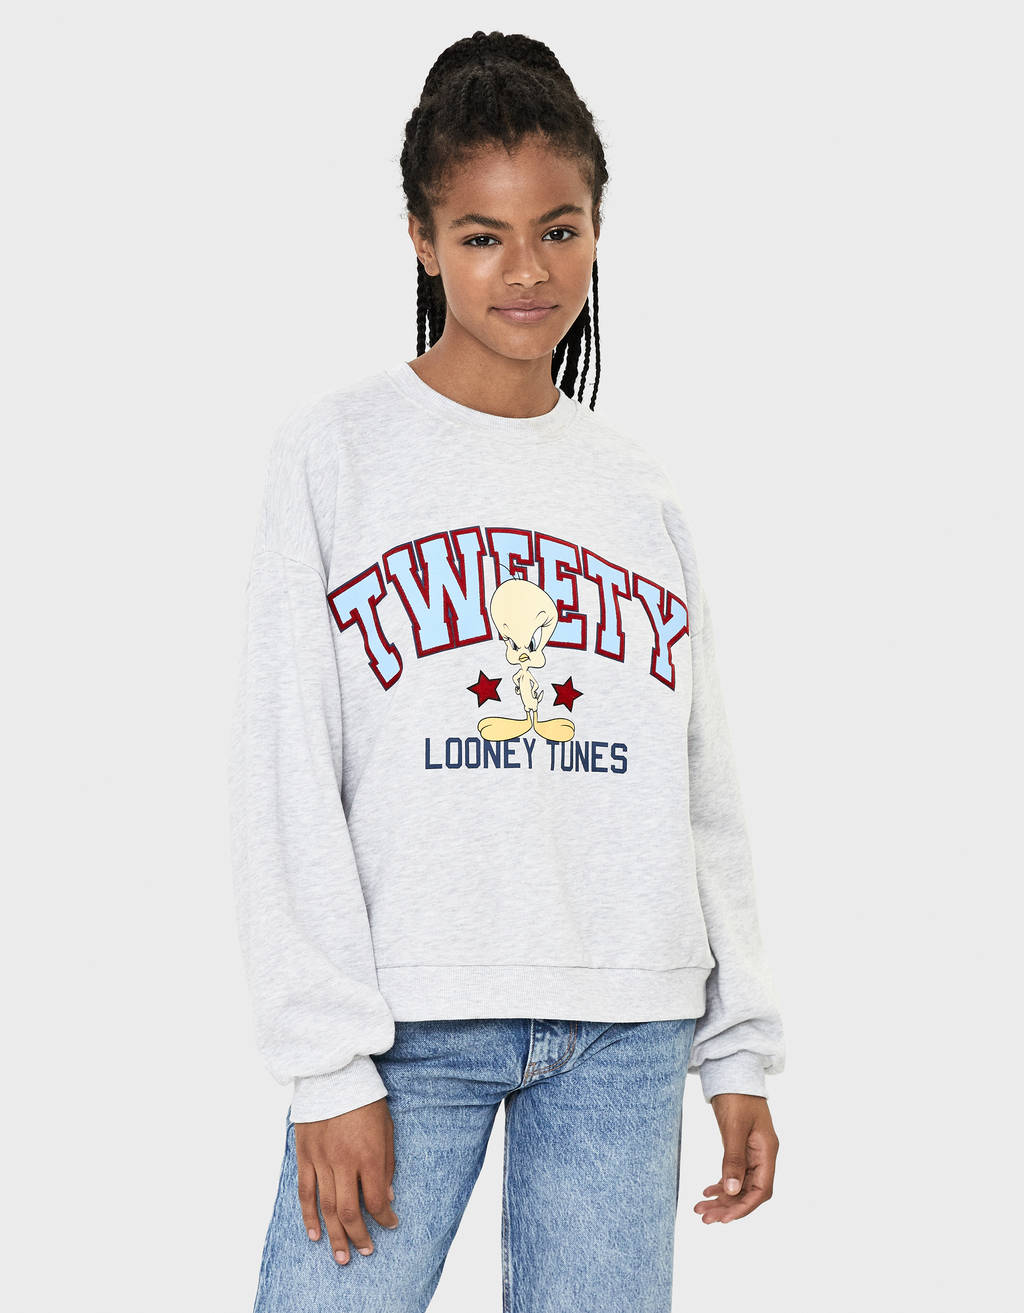 Looney Tunes -college